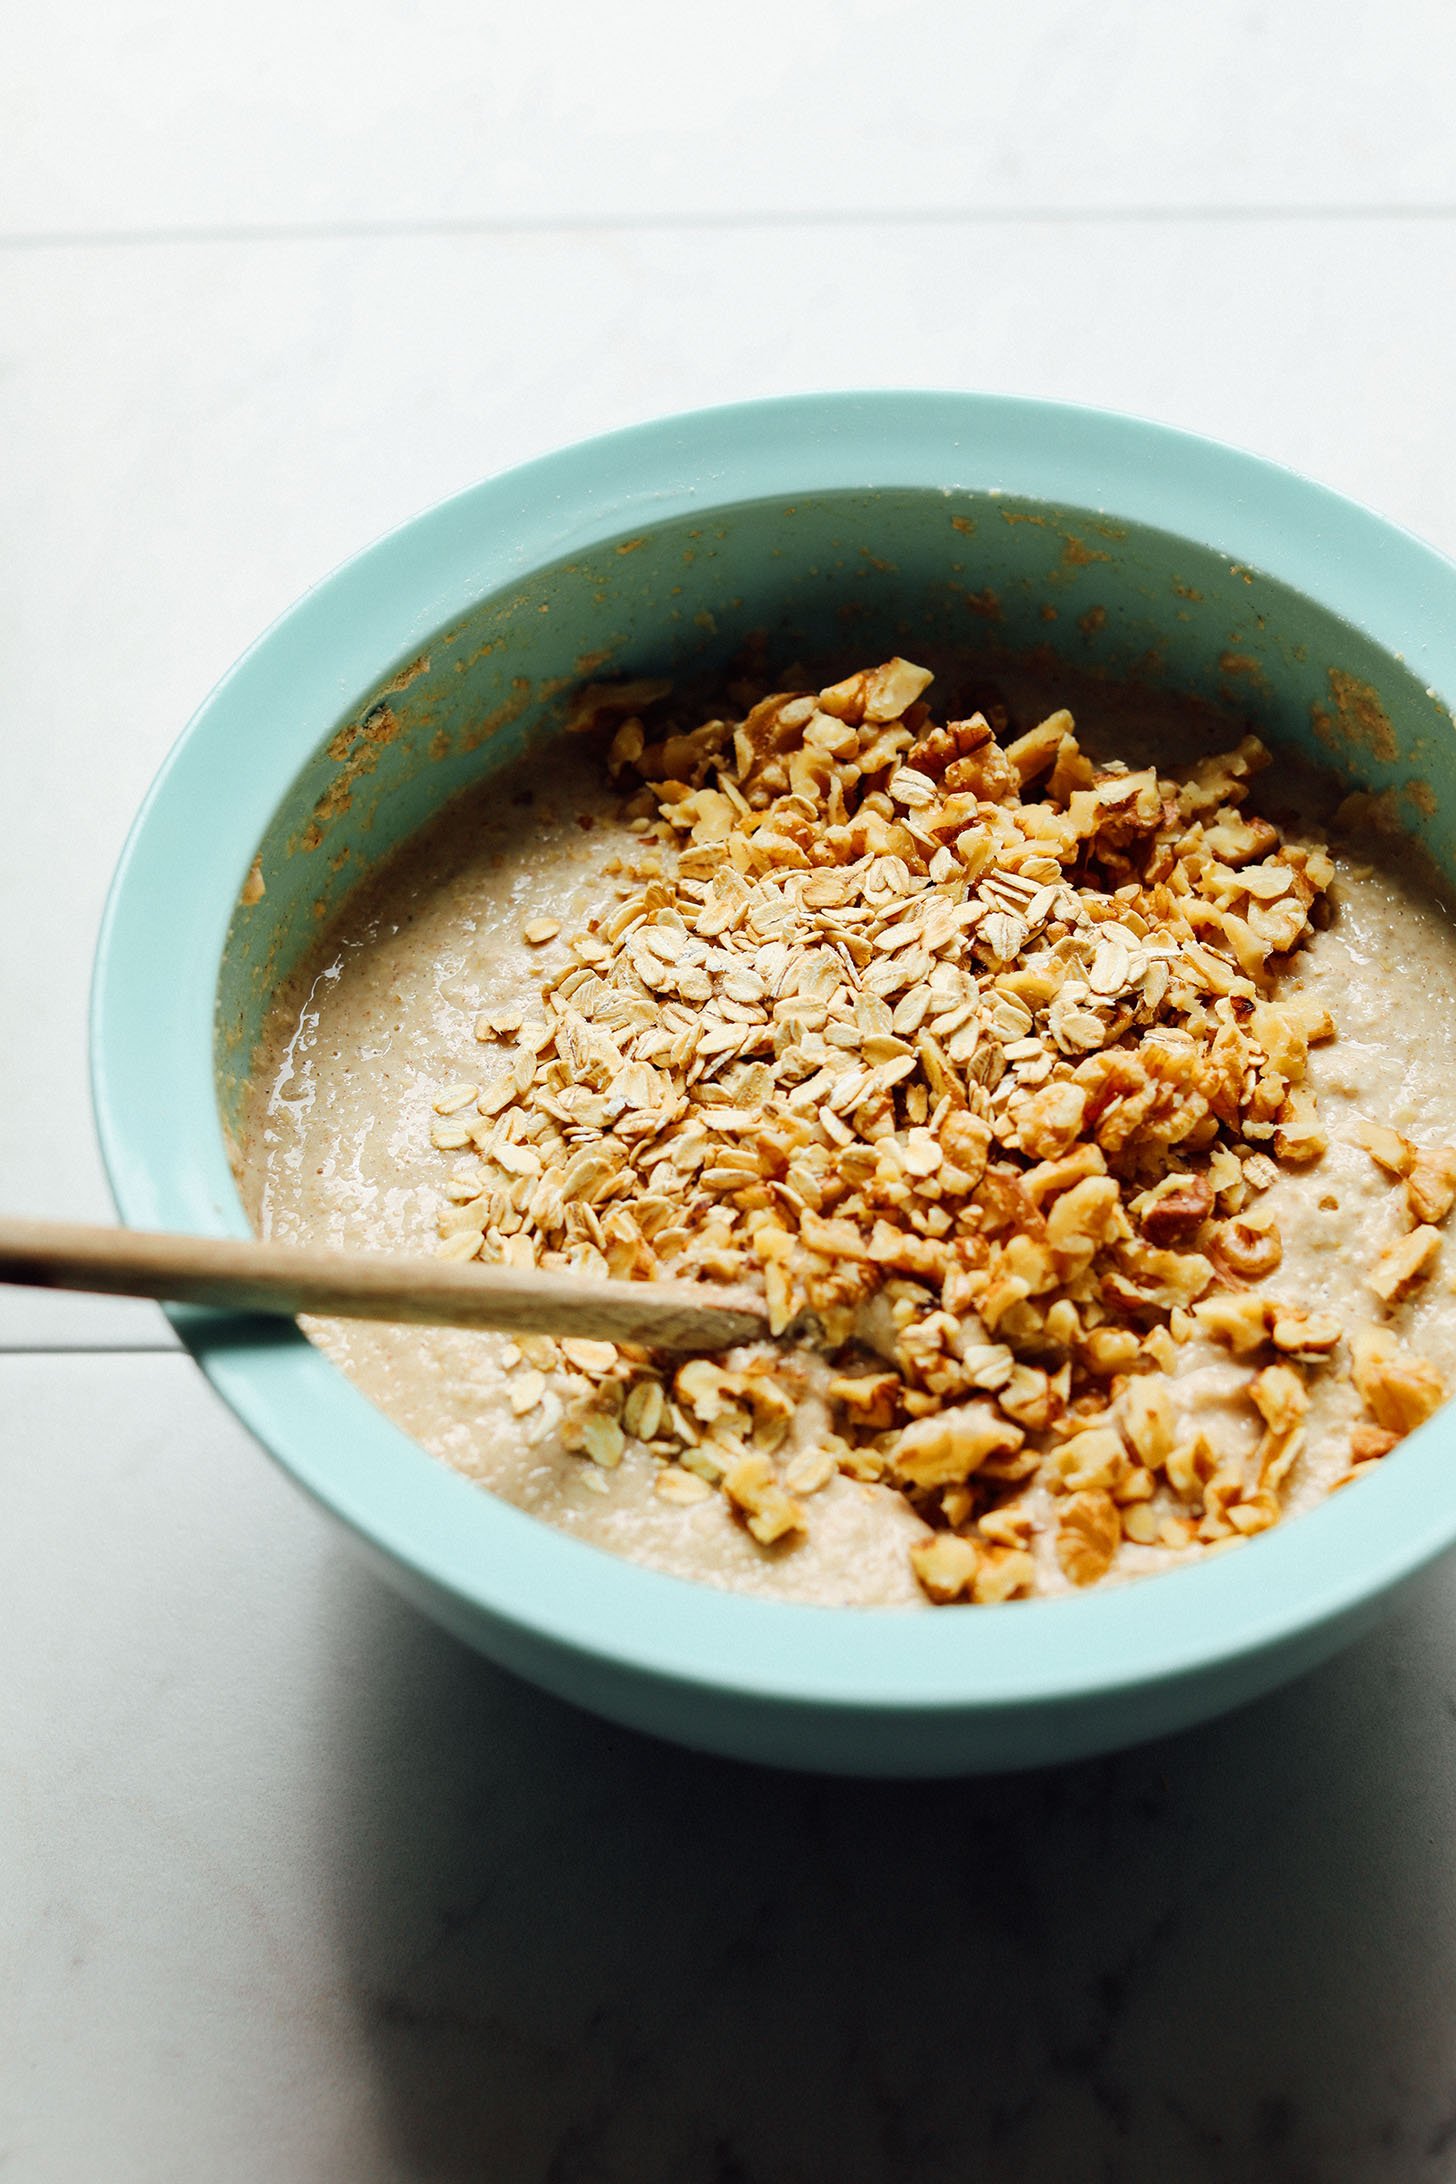 Stirring oats and walnuts into gluten-free Banana Pancakes batter